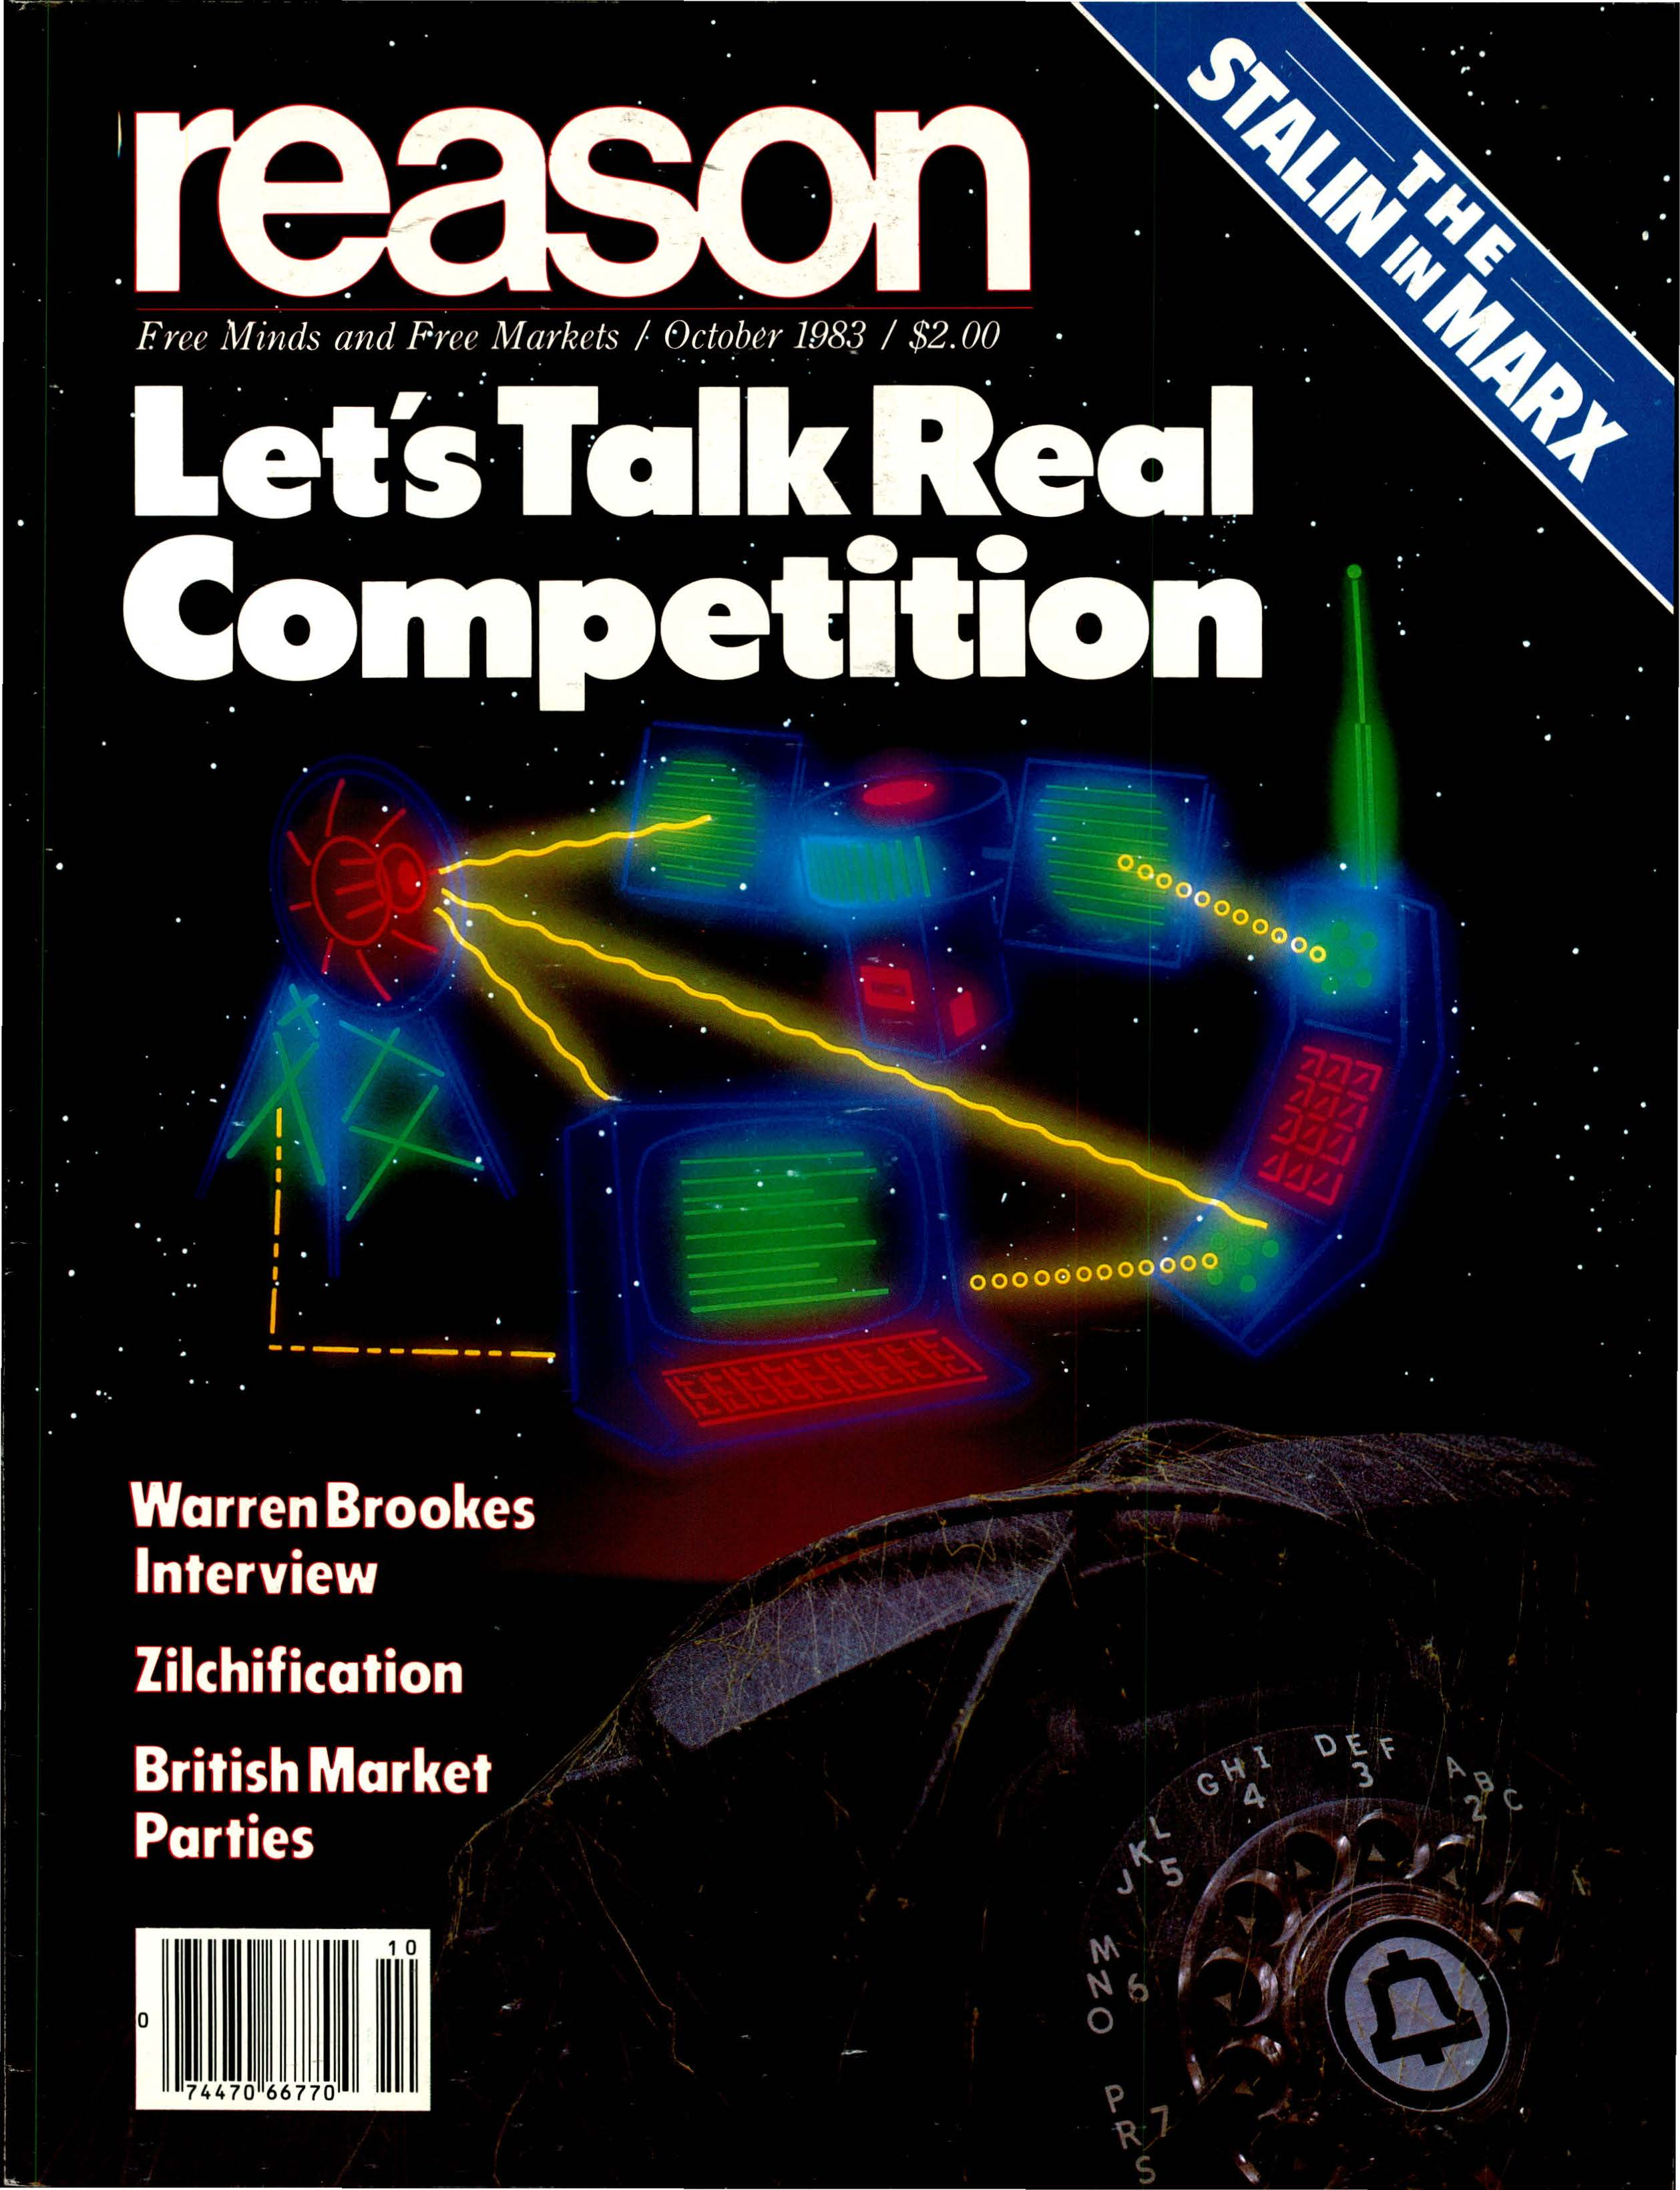 Reason Magazine, October 1983 cover image